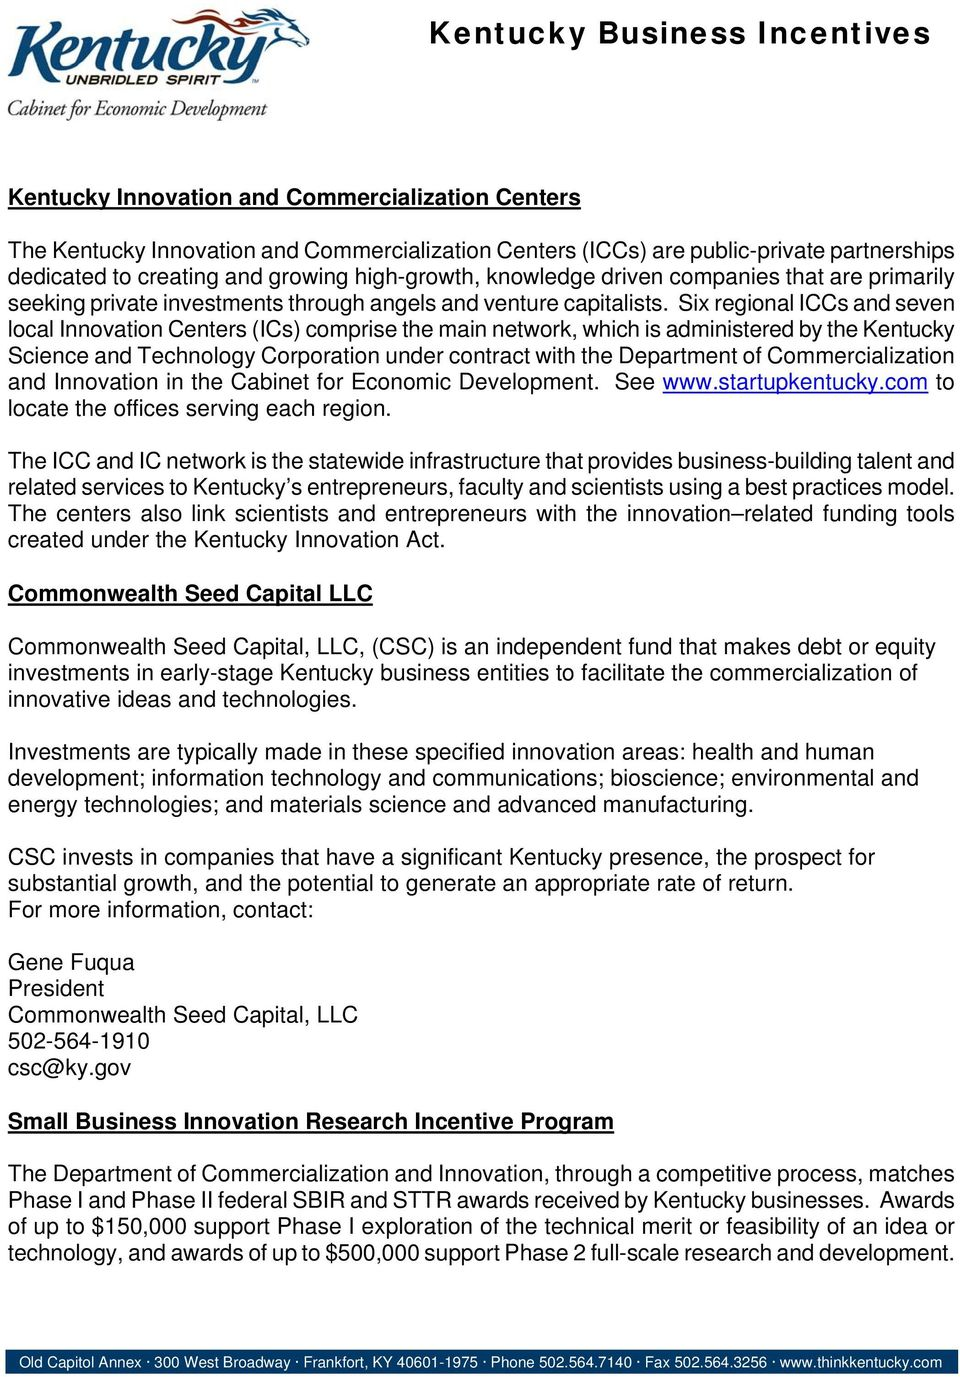 Six regional ICCs and seven local Innovation Centers (ICs) comprise the main network, which is administered by the Kentucky Science and Technology Corporation under contract with the Department of